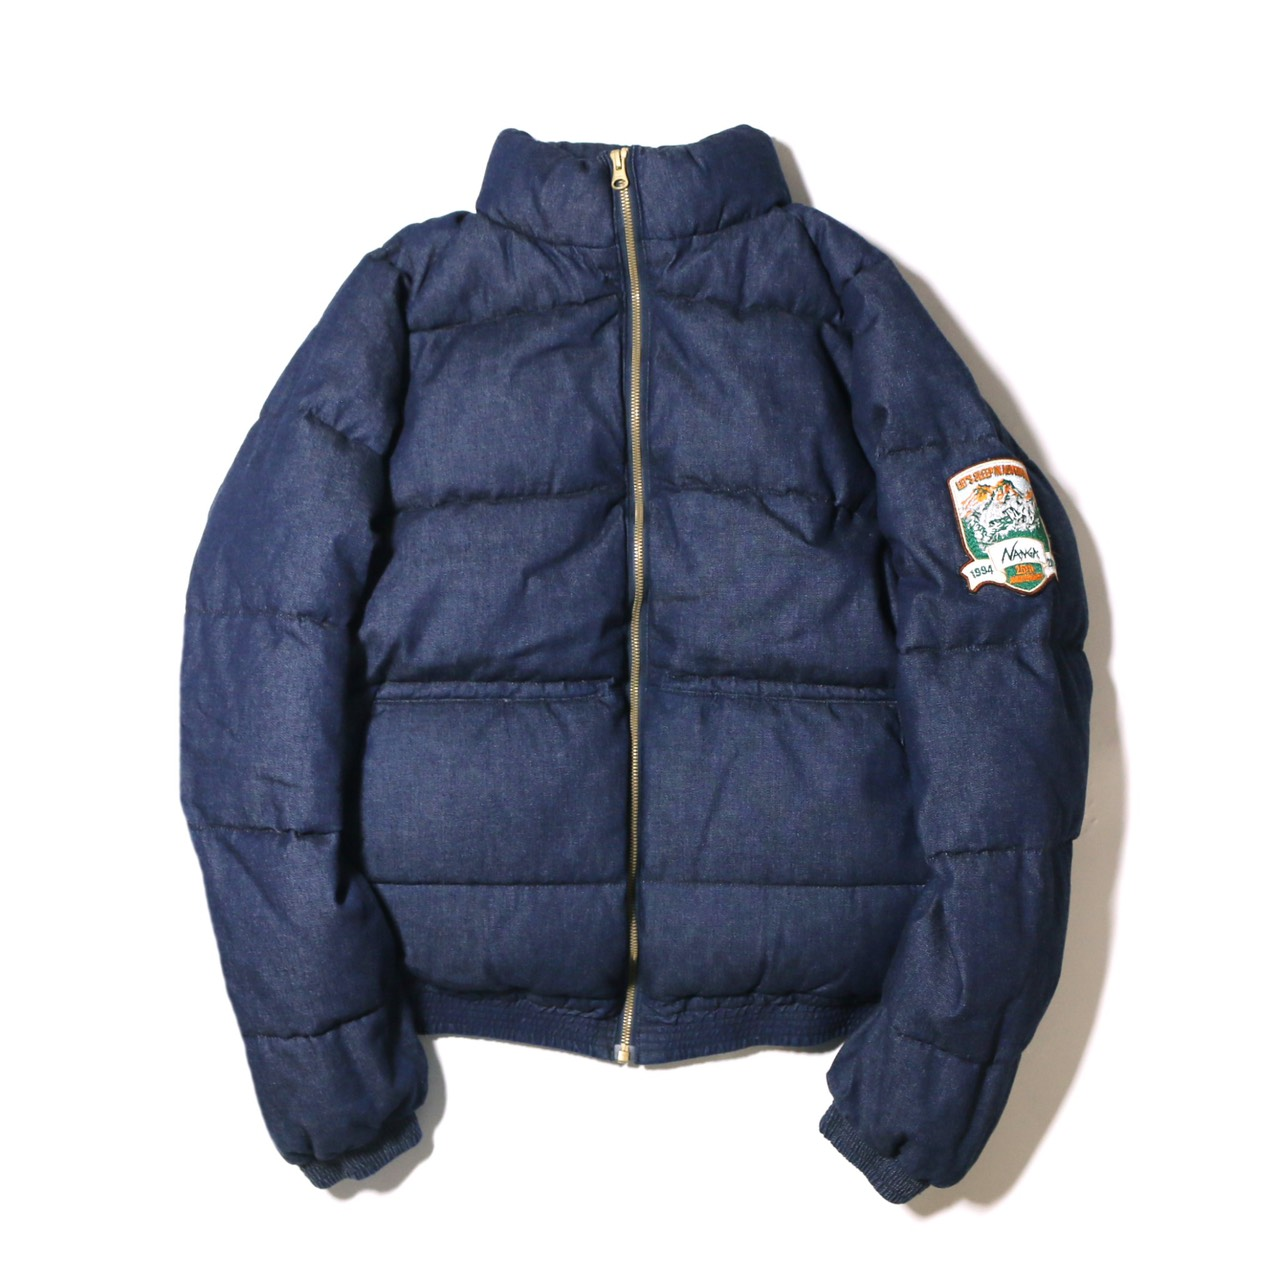 25th Anniversary Down Jacket(Denim)